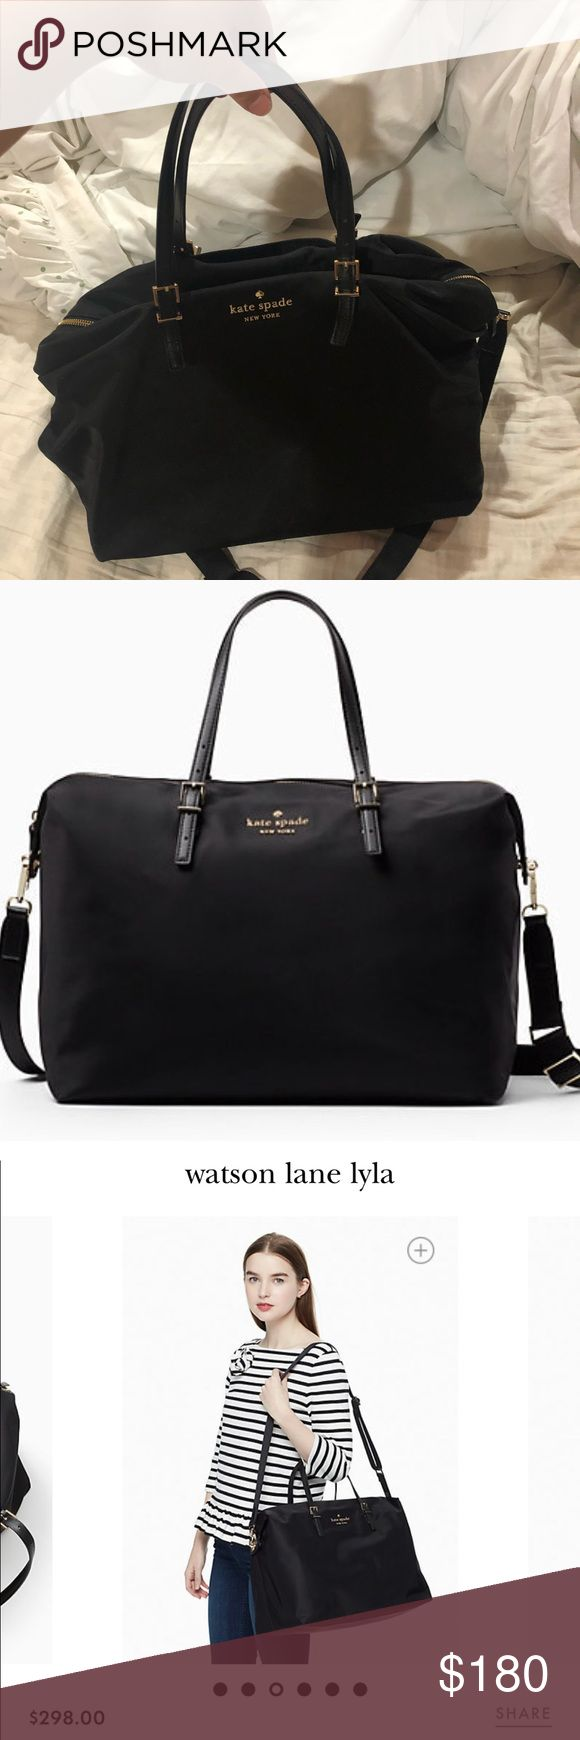 "Kate Spade Weekend Bag Perfect condition weekend bag with adjustable crossbody strap. No stains or holes/tears. SIZE: 13.5""h x 15.6""w x 9.6""d drop length: 7.5'' handle; 10'' - 22'' adjustable  Originally $298 plus tax kate spade Bags Travel Bags"